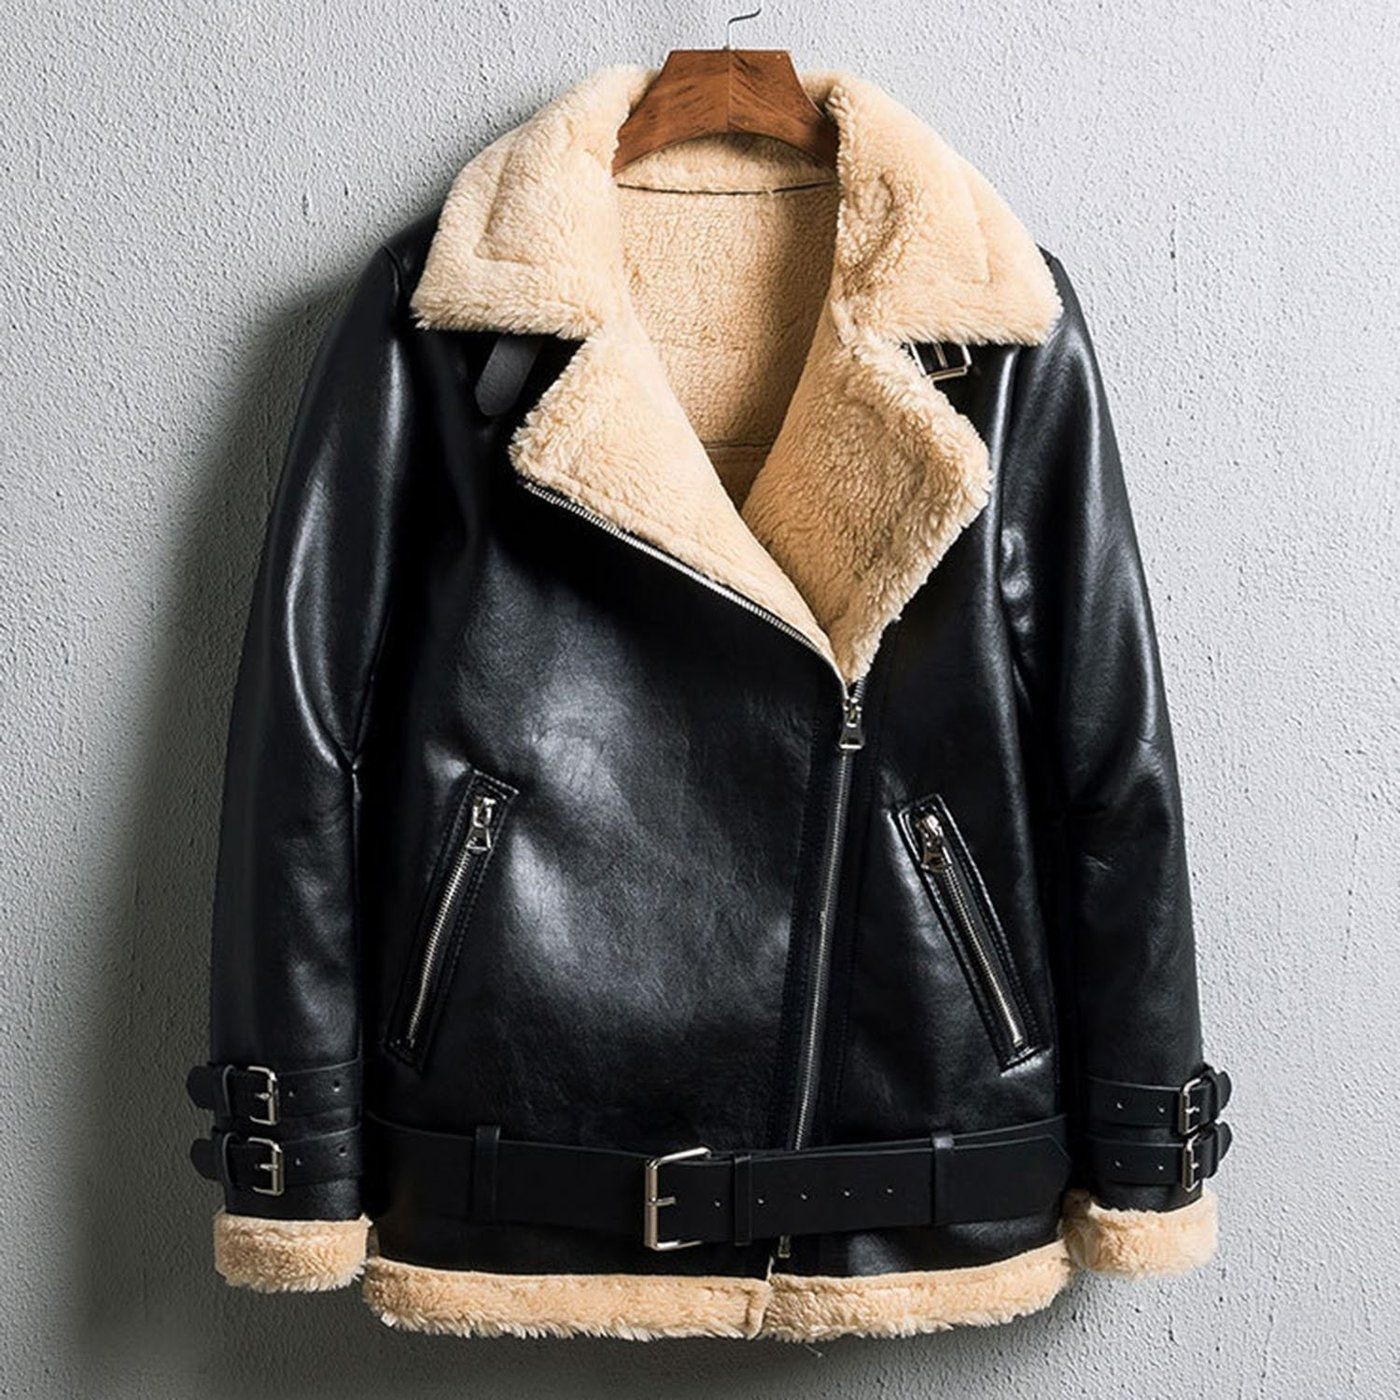 Oversized Faux Fur Moto Bike Jacket in 2020 Faux fur